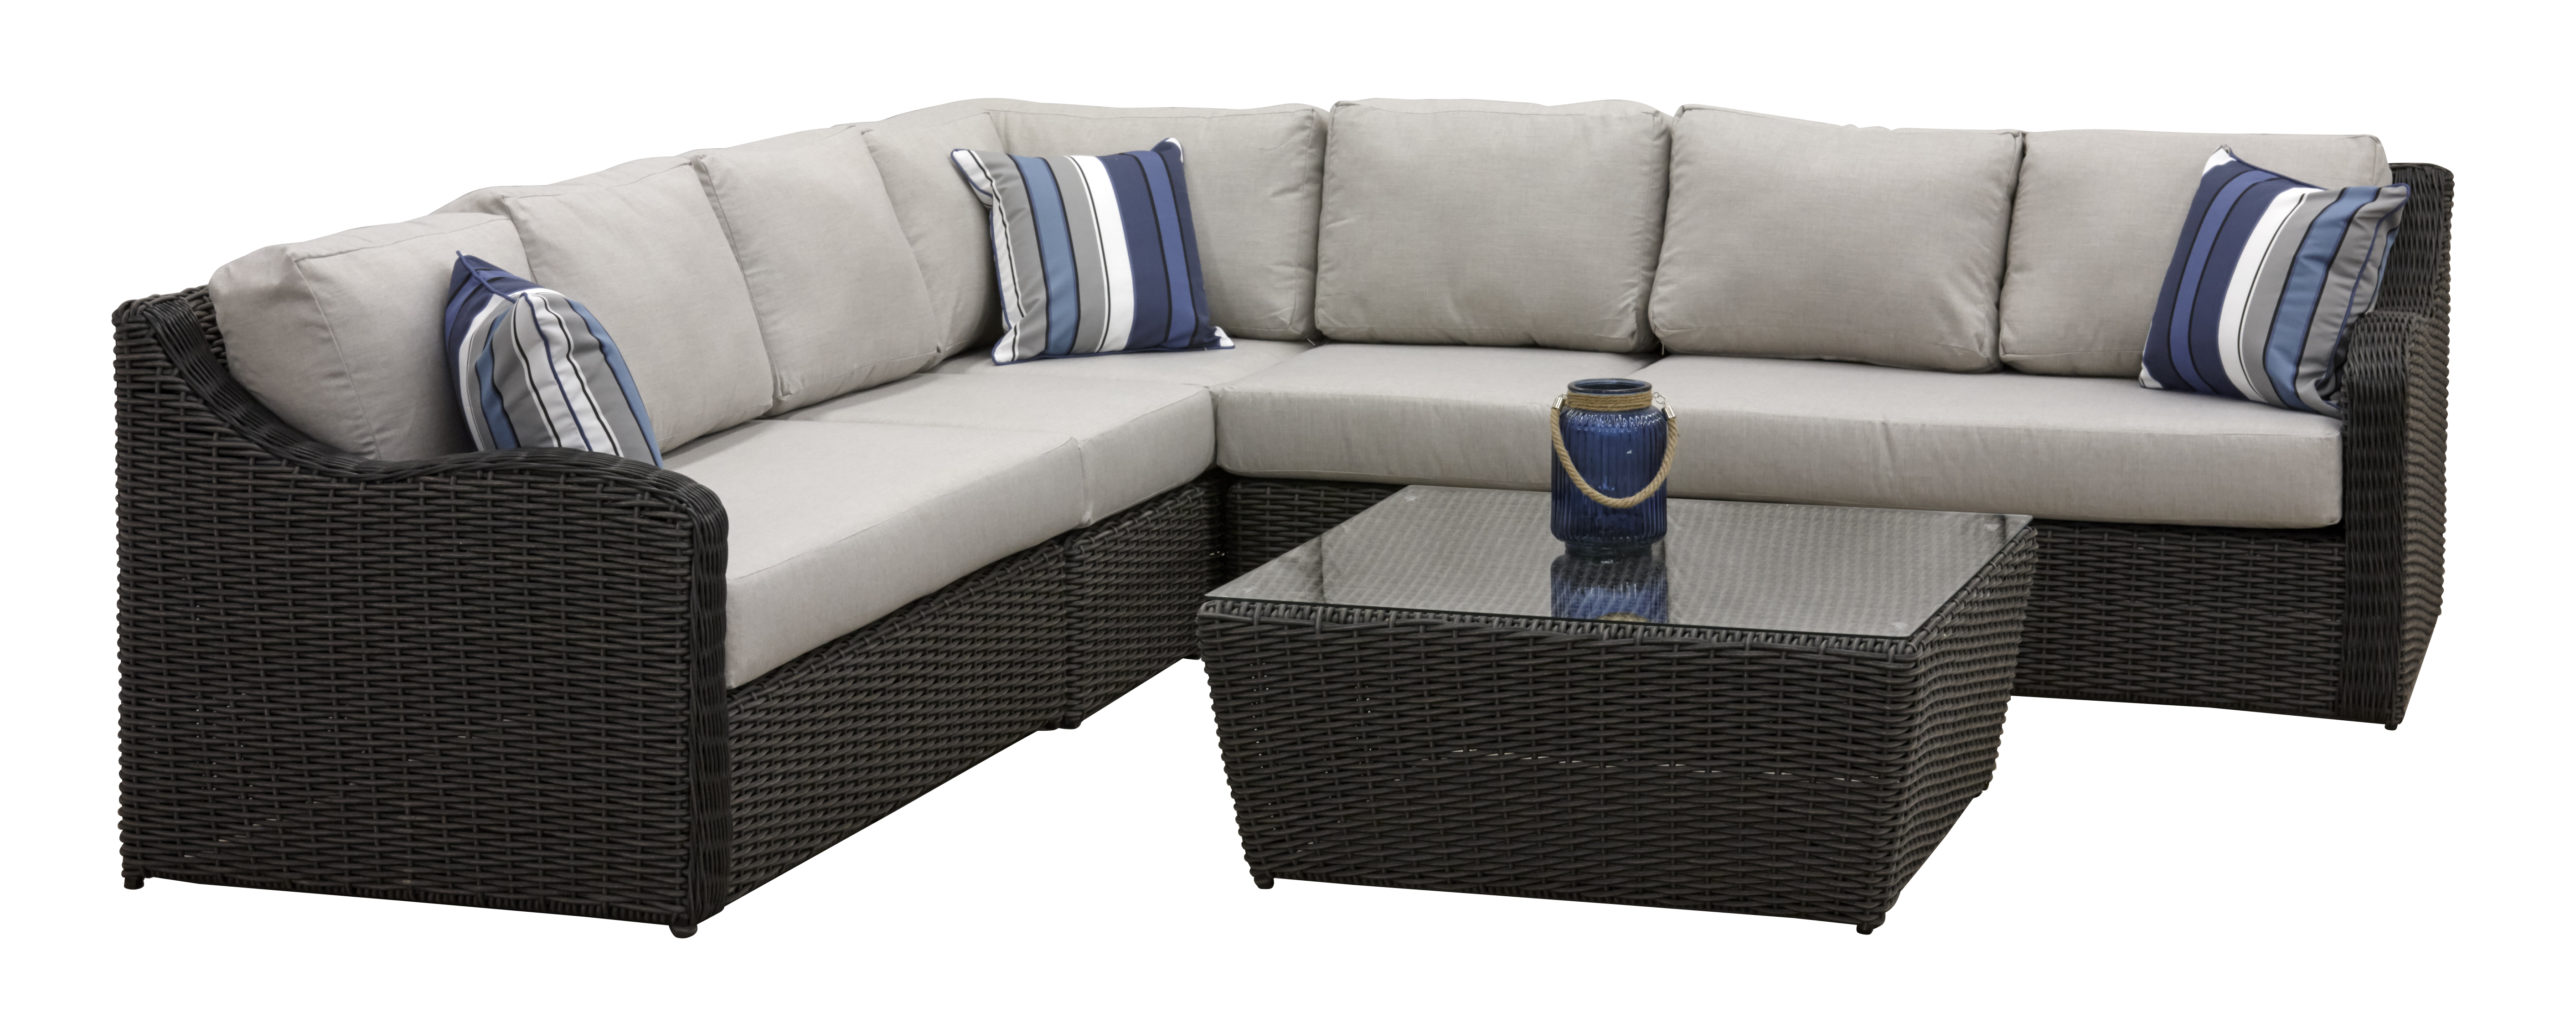 Outdoor Patio Furniture Sonoma Sectional